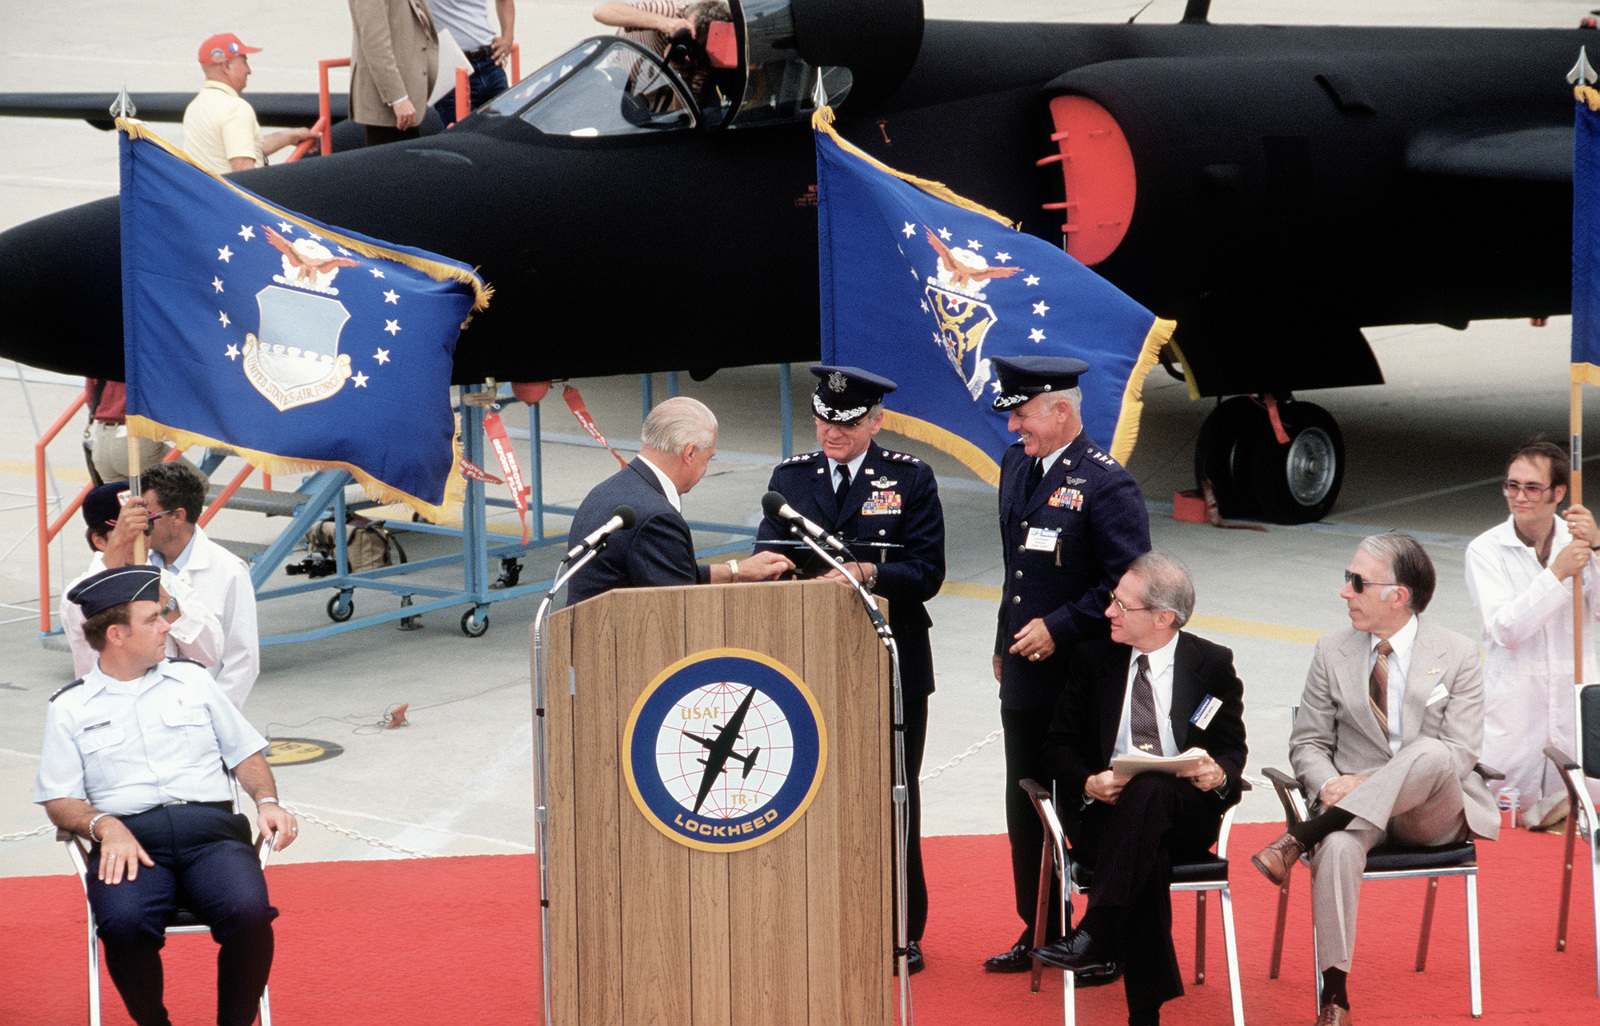 Kelly Johnson, developer of the original U-2 reconnaissance aircraft presents models of its successor, the new TR-1 aircraft (background) to LGEN James P. Mullins and LGEN John G. Albert during its rollout ceremony. LGEN Mullins is the new commander of the Air Force Acquisition Logistics Command and LGEN Albert is the former commander